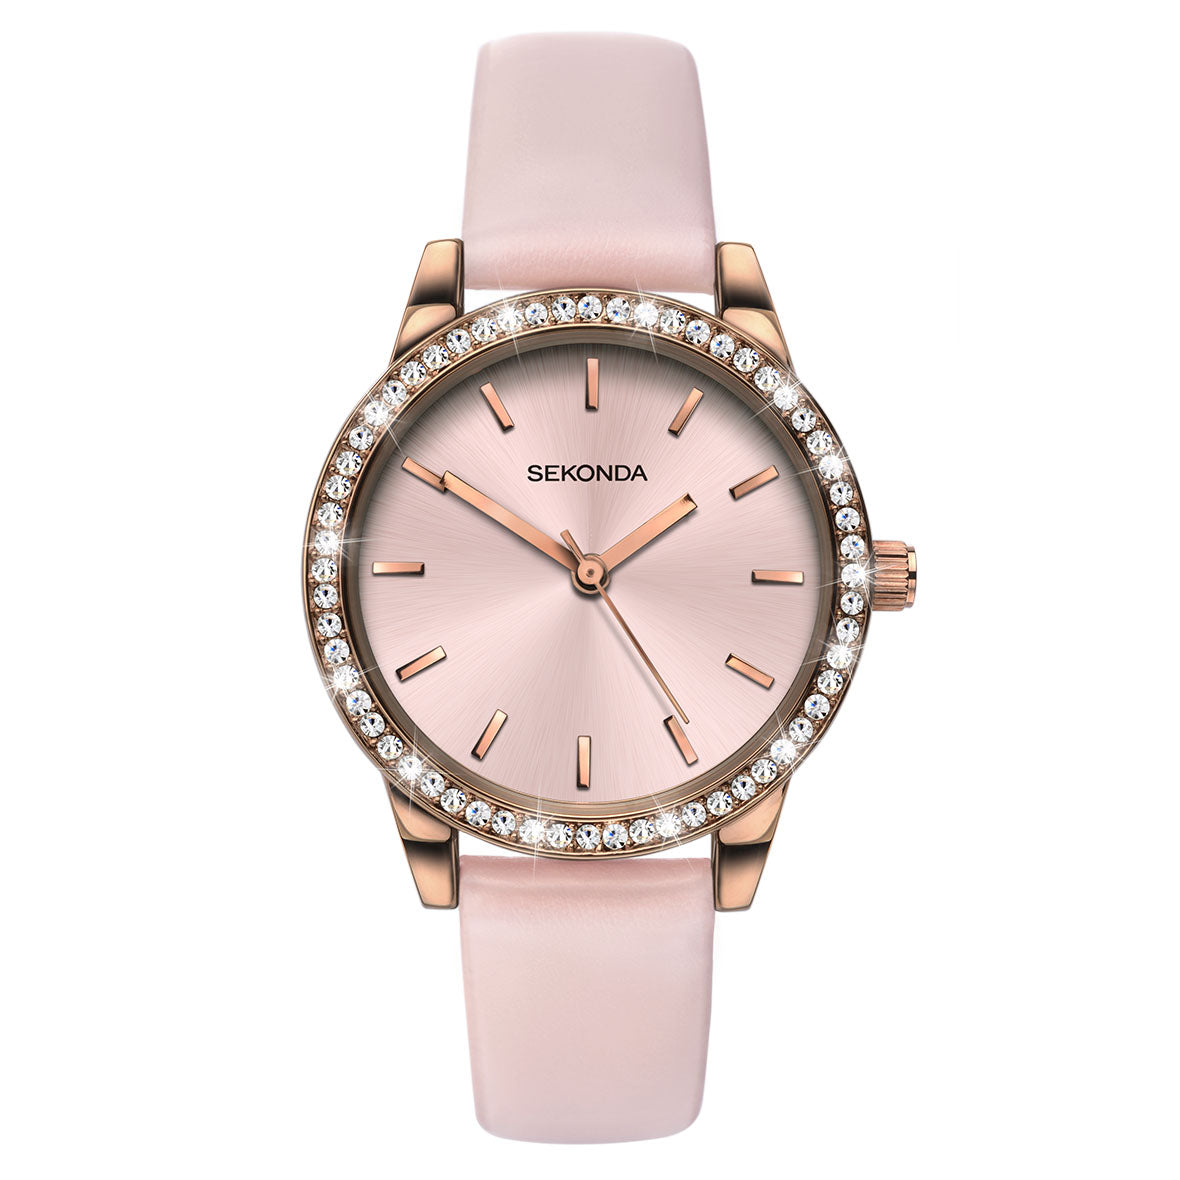 Sekonda Editions Women s Rose Gold Plated Strap Watch bfb5e69bcef9